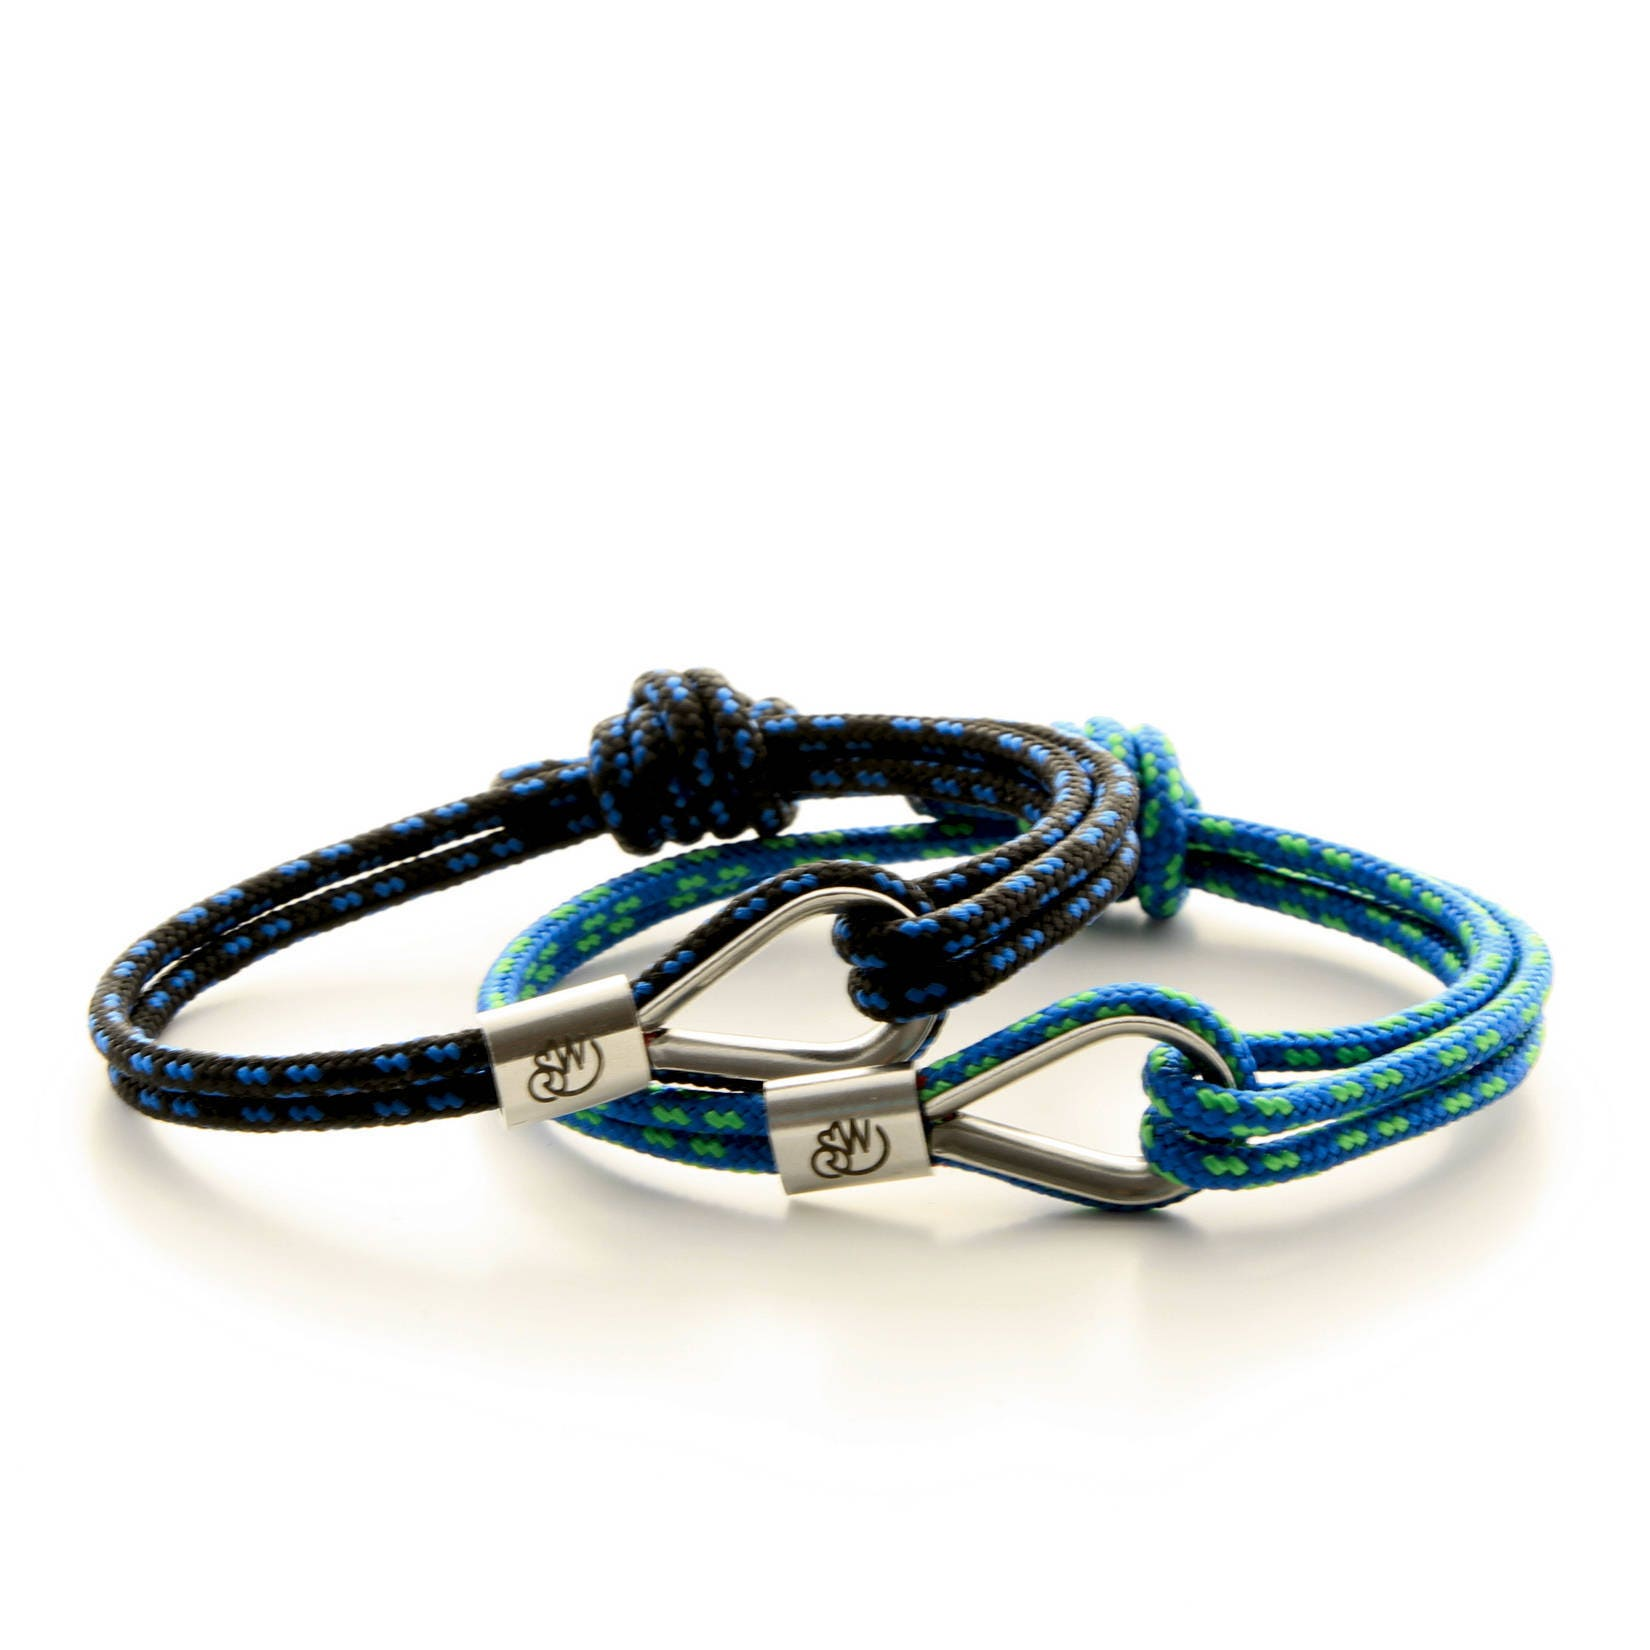 wristband women leather mens wrap nautical sailor shackles anchor amazon cord screw jewelry com rope steel dp bracelet